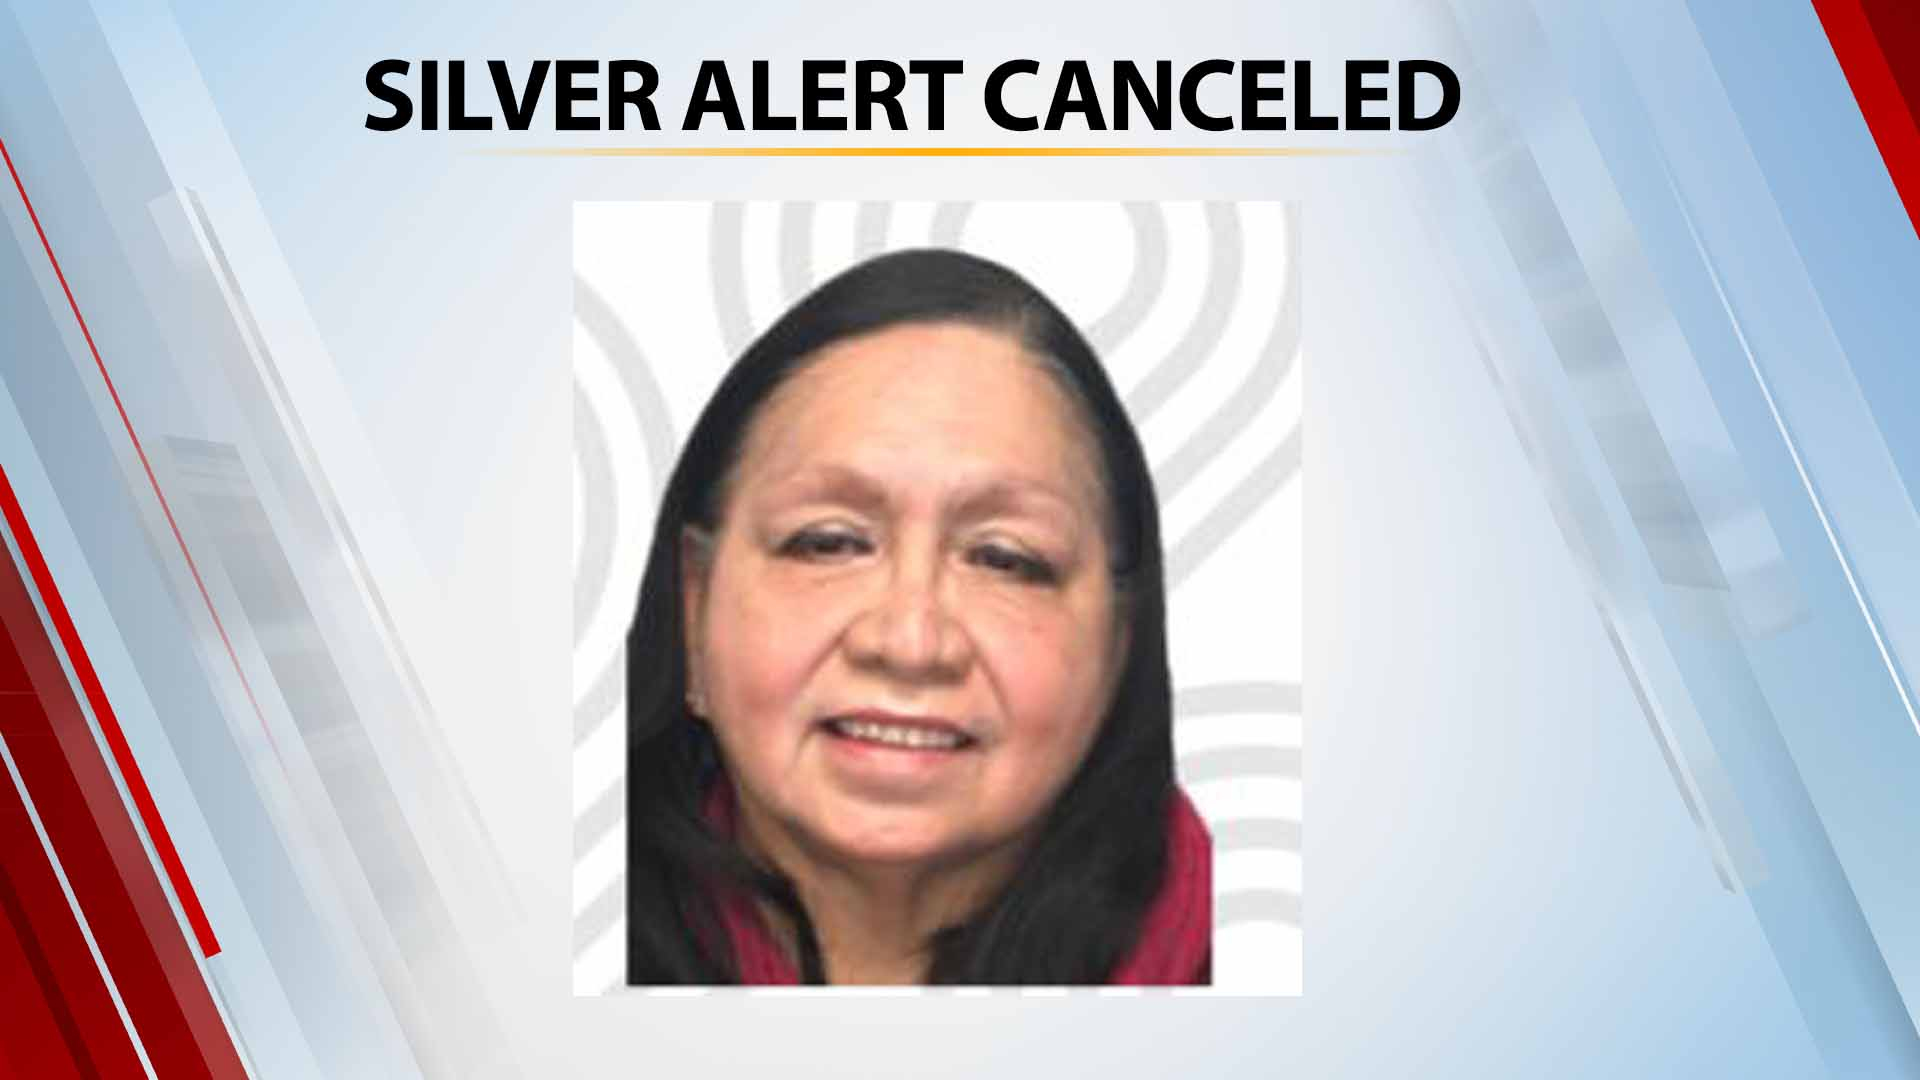 Silver Alert Canceled For Missing 69-Year-Old Woman Last Seen In Tahlequah